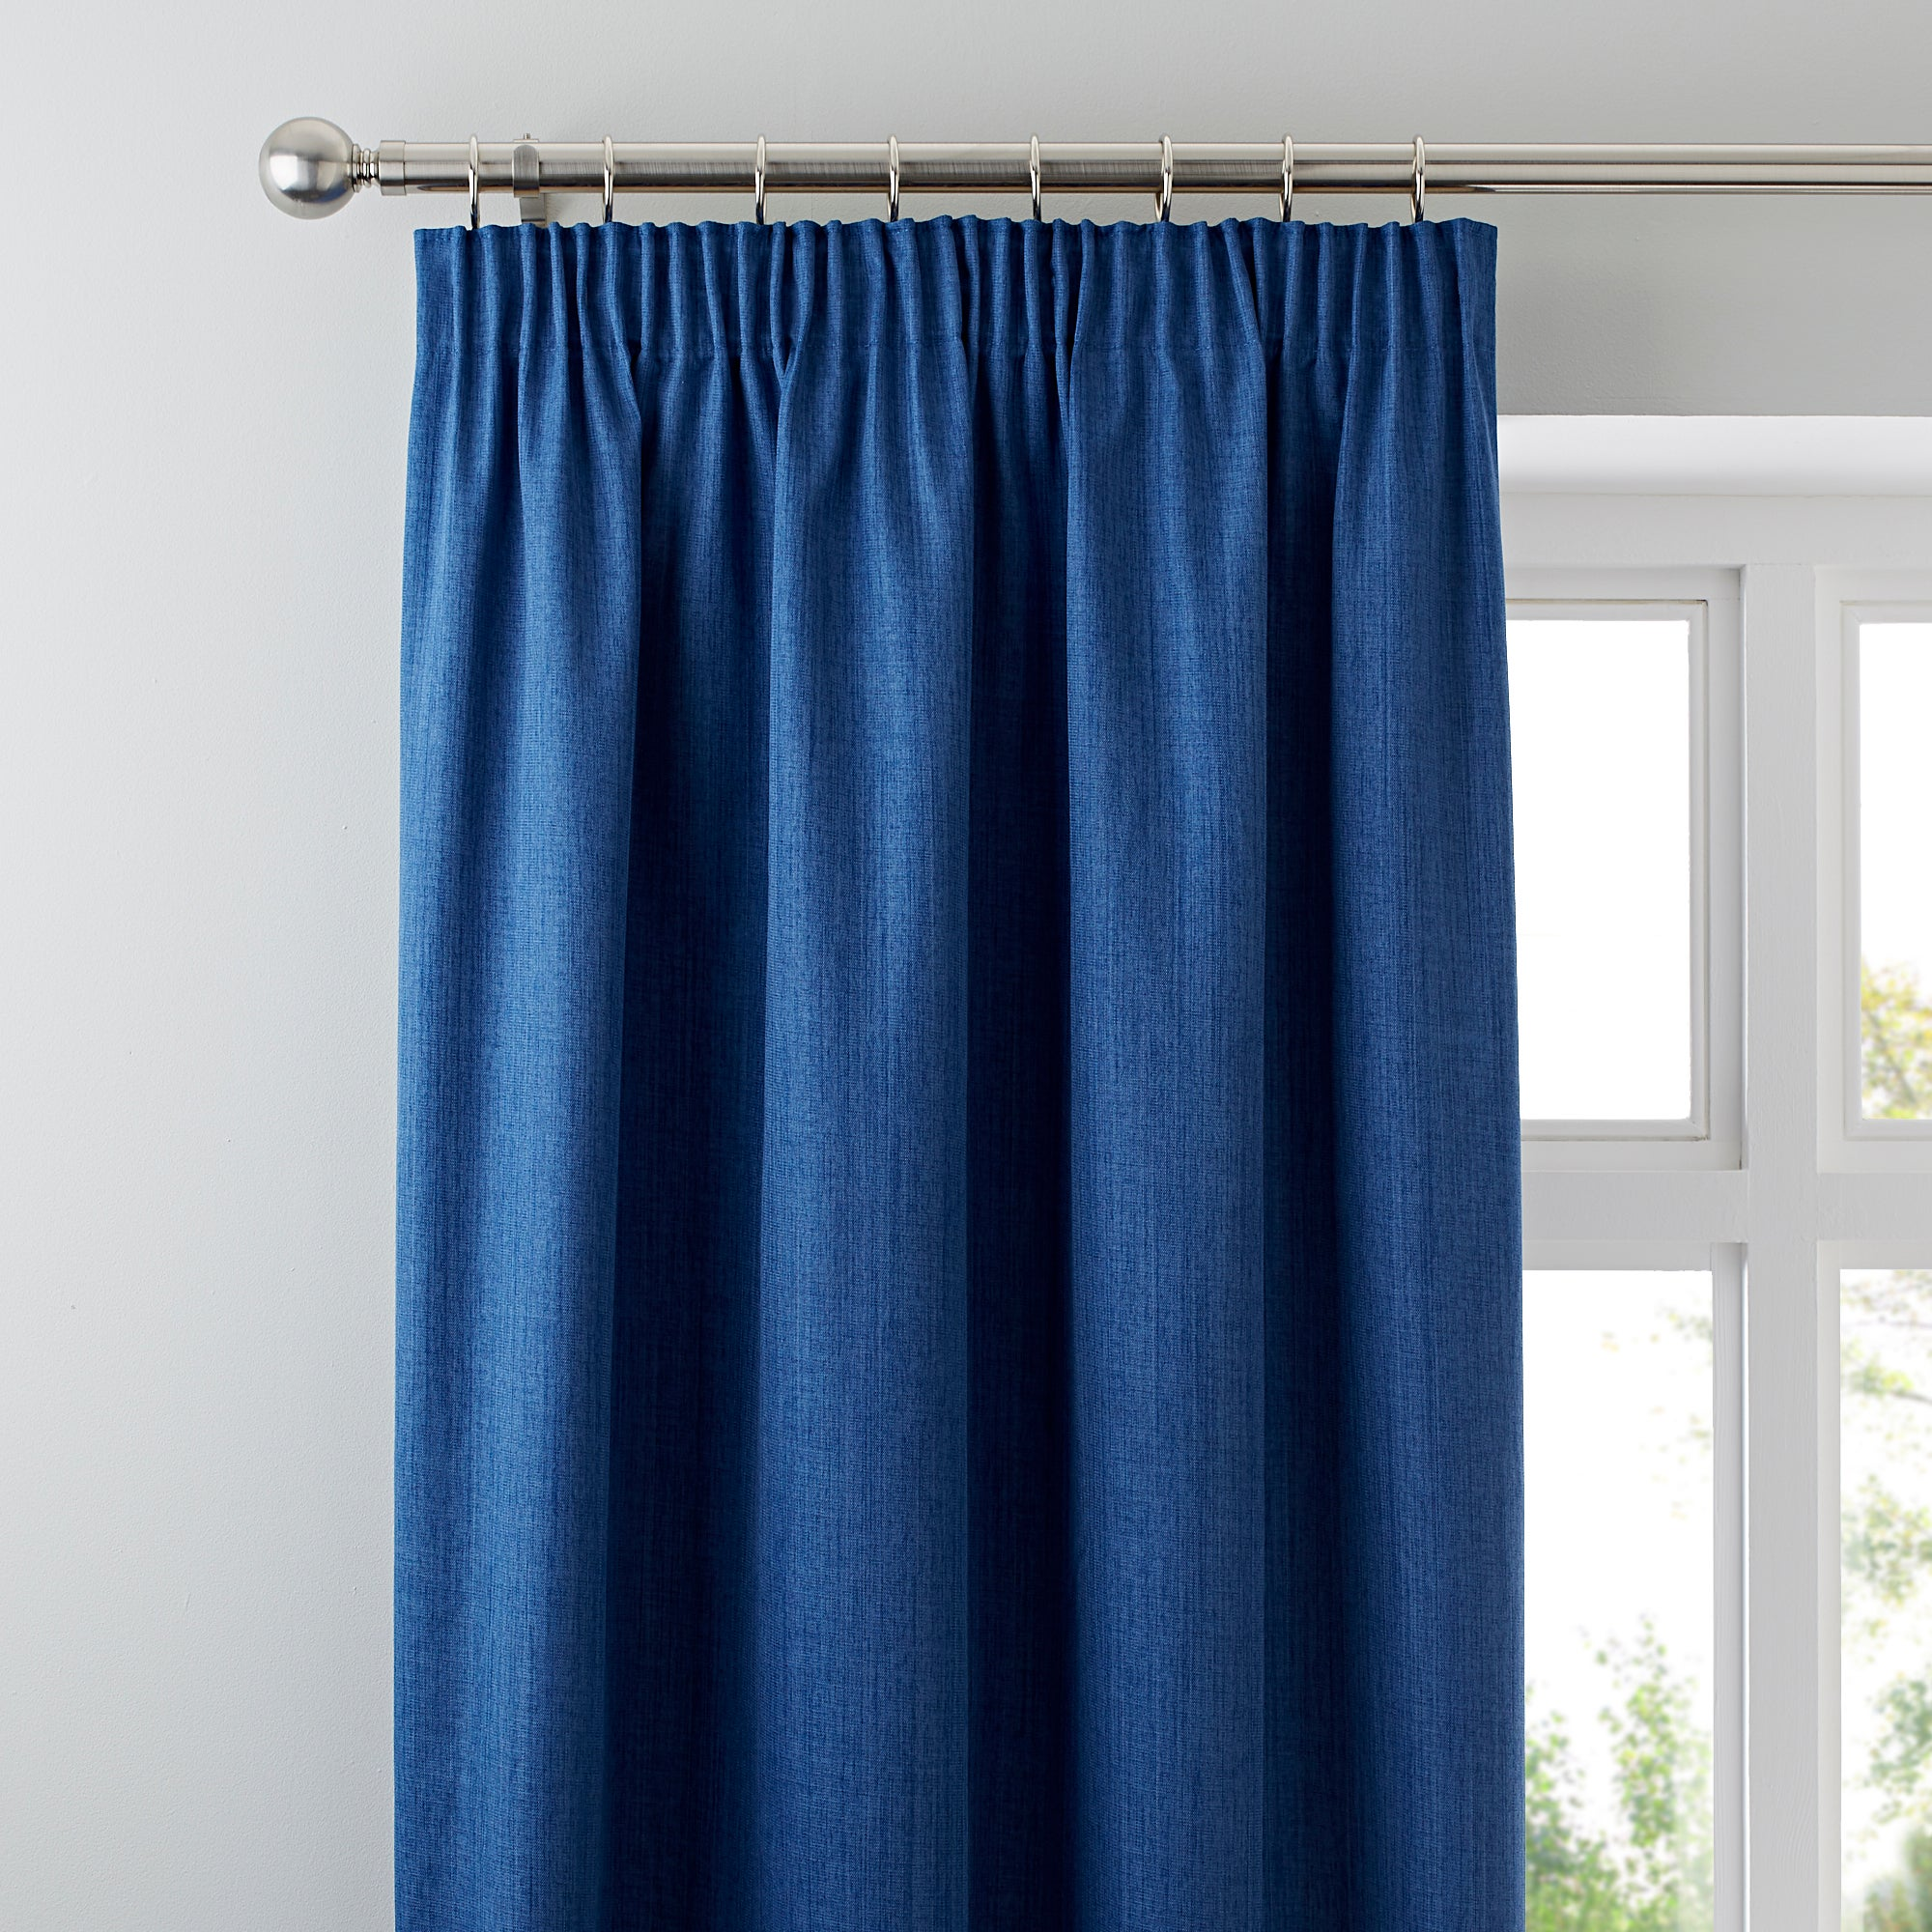 Waters and Noble Blue Solar Blackout Curtains